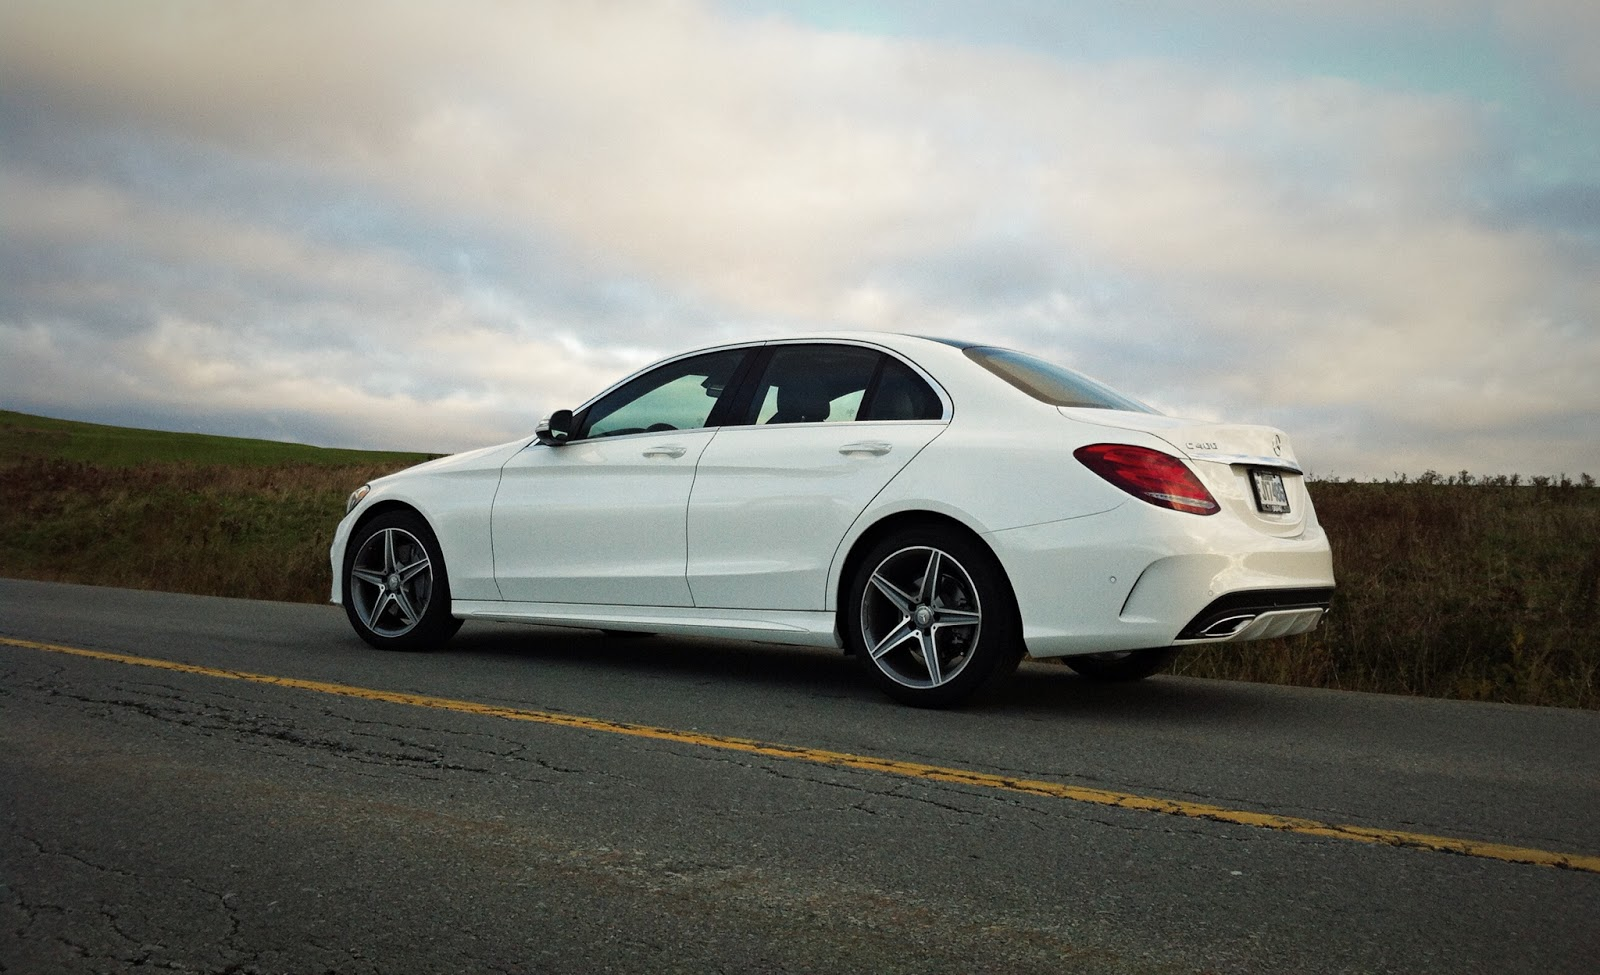 2015 Mercedes-Benz C400 4Matic Review - An Actual Luxury ...